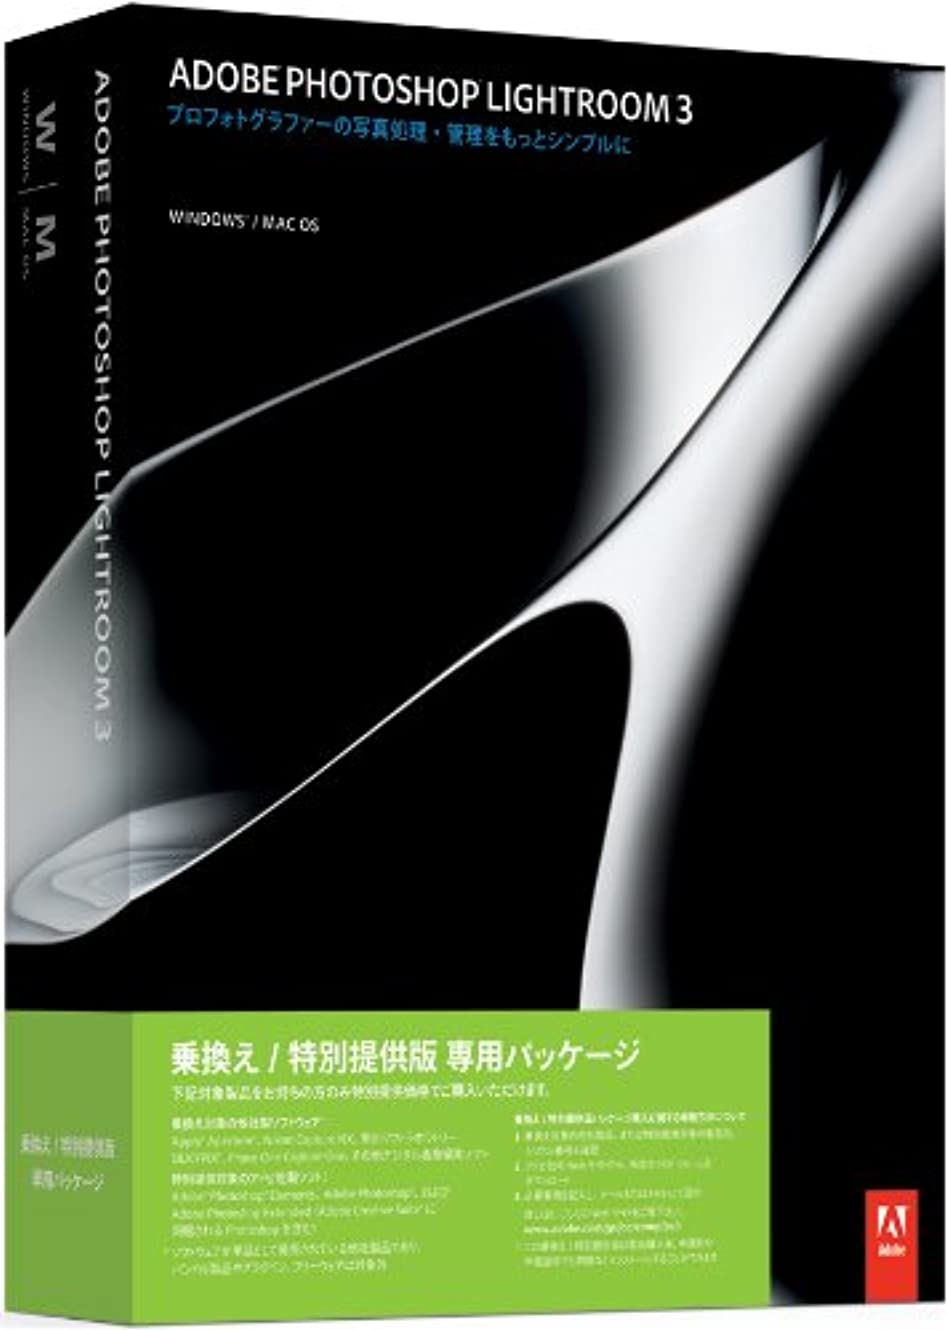 霧日付付きノートAdobe Photoshop Lightroom 3.0 Windows/Macintosh版 【特別提供版】